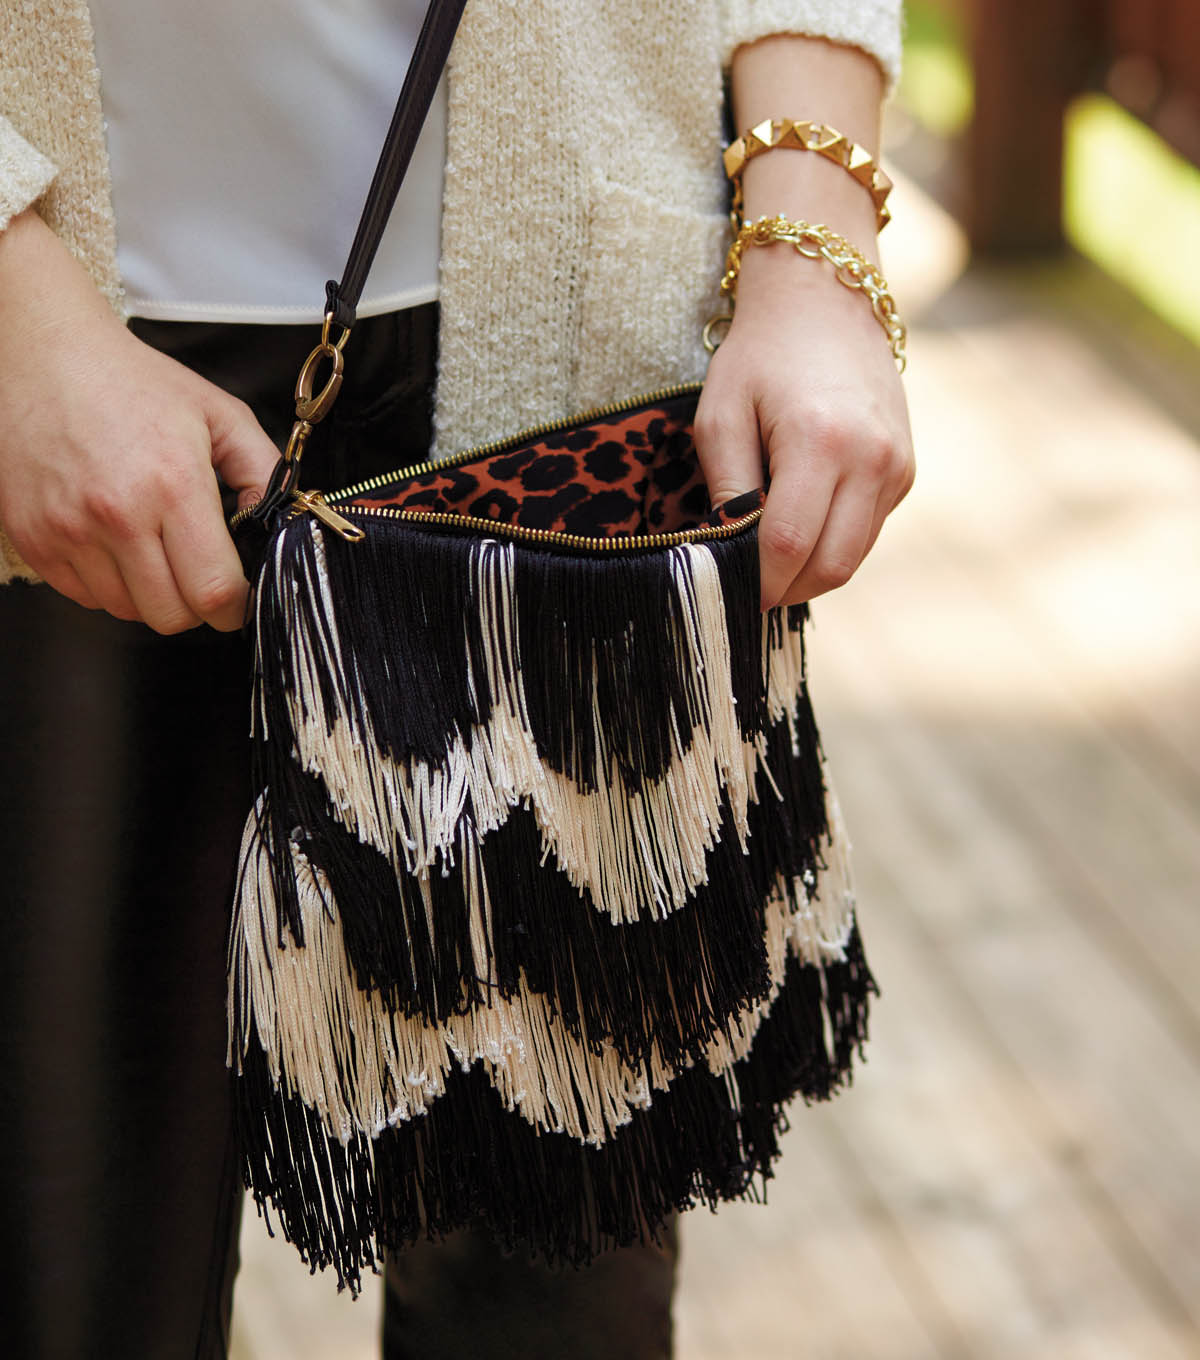 Sew Stylish Layered Fringe Purse